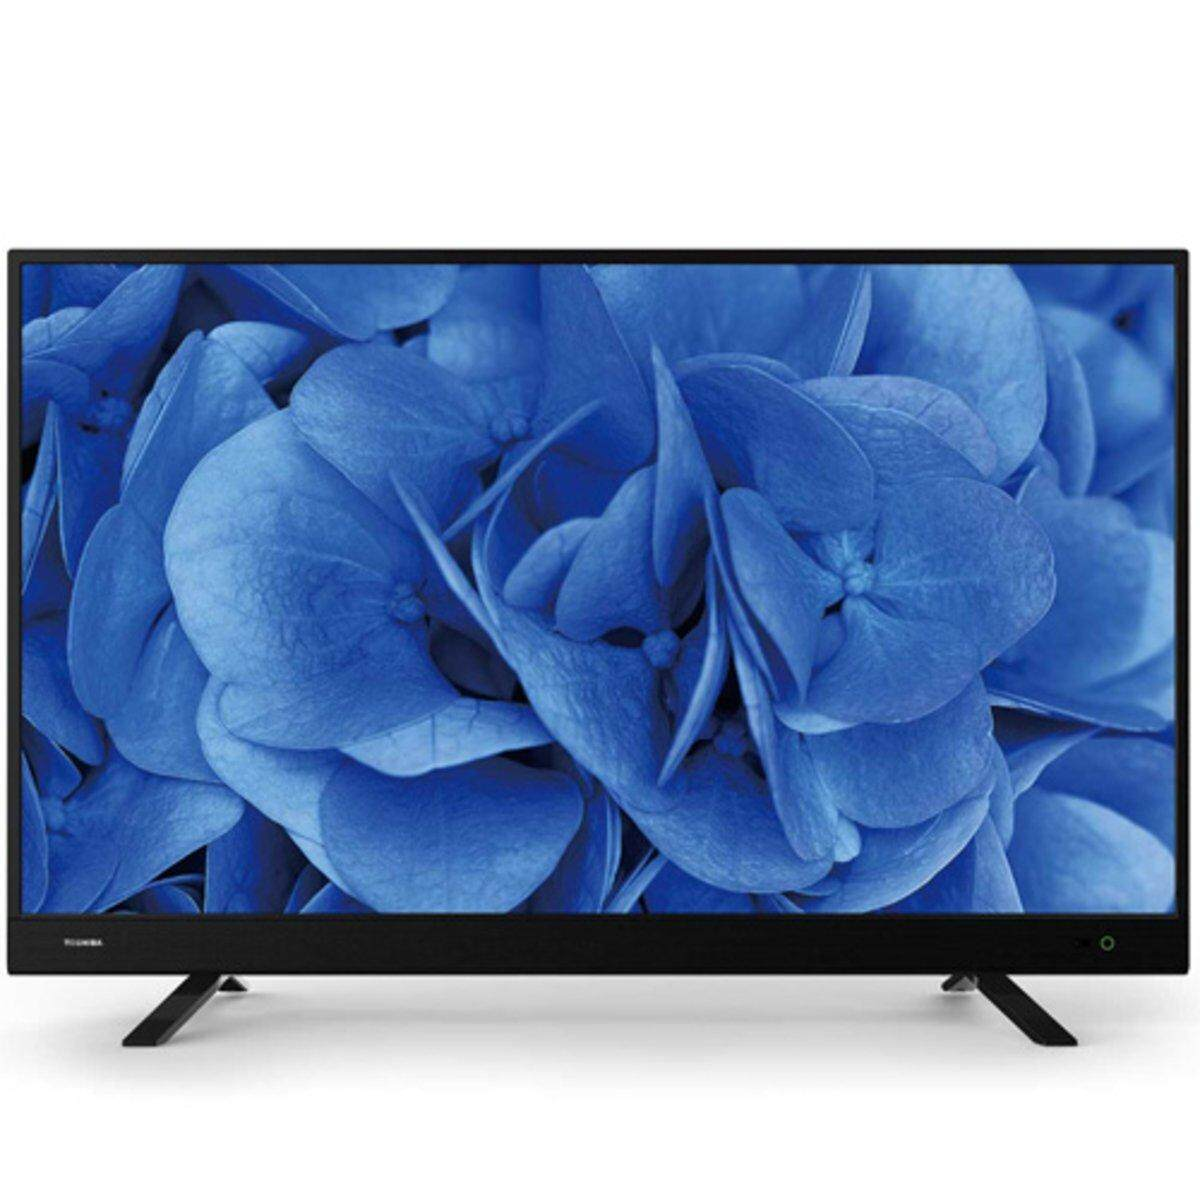 "TOSHIBA LED TV 40"" 40L3750"